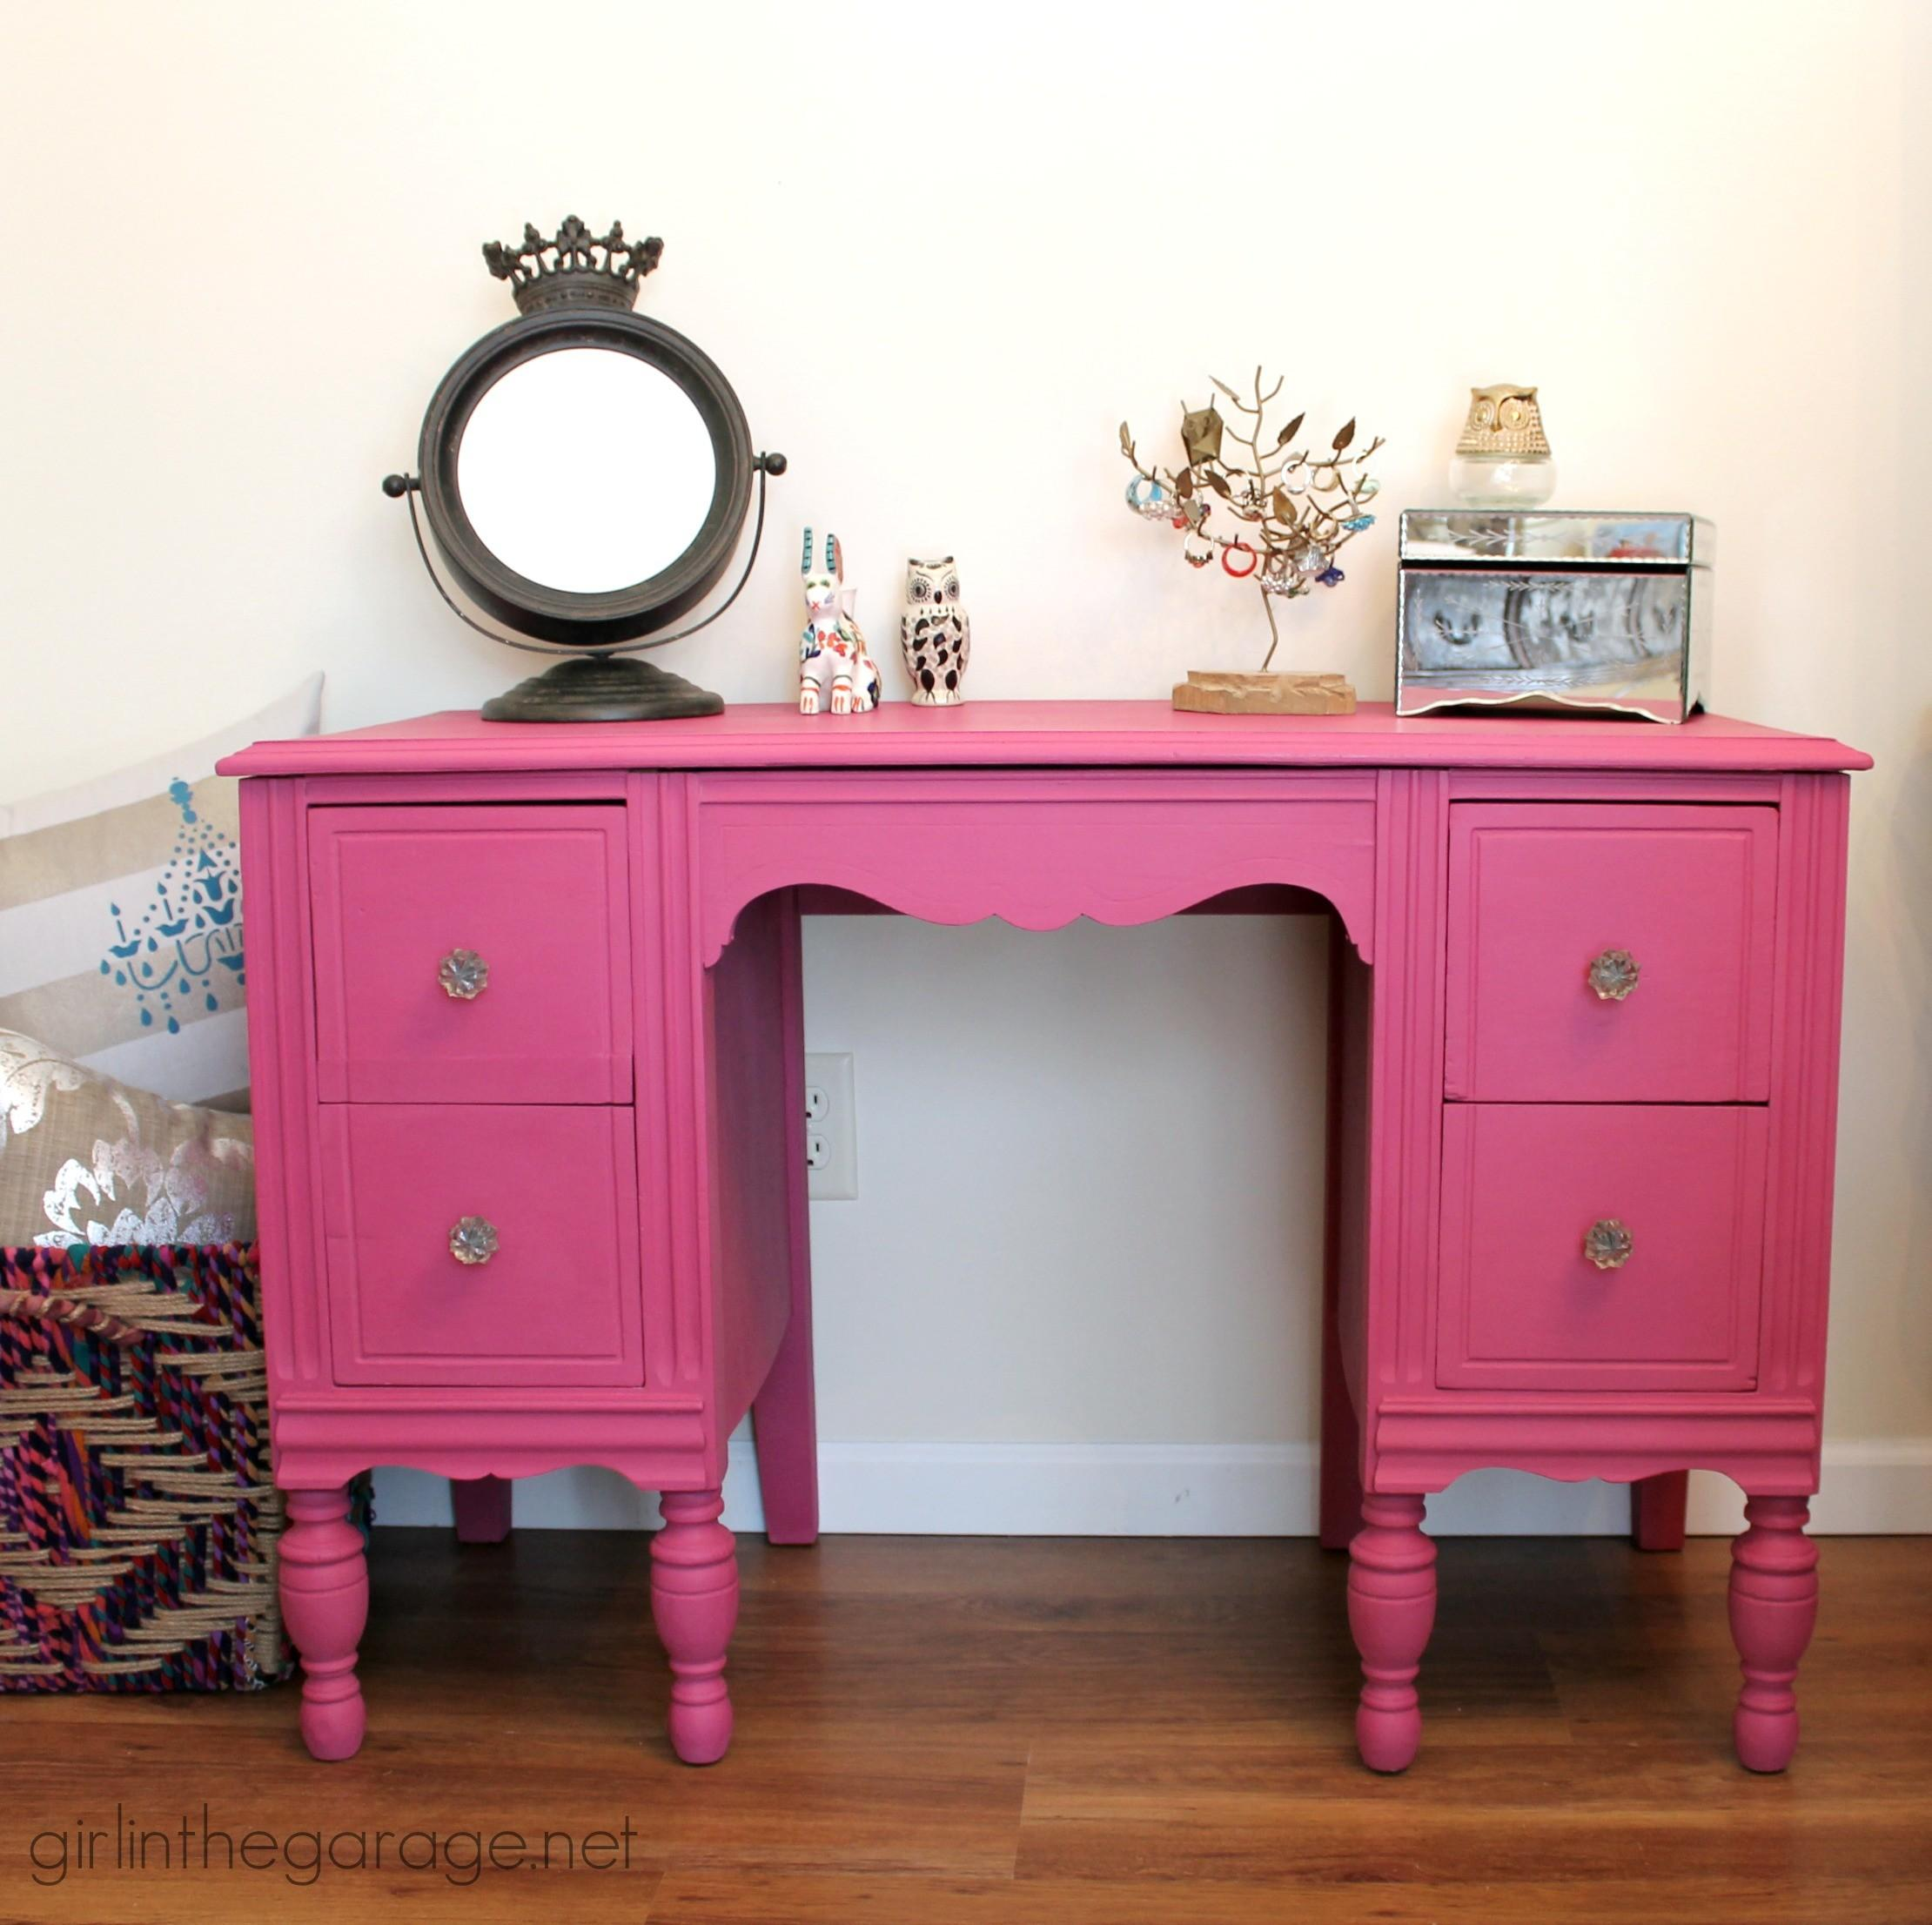 Custom Pink Chalk Paint Vanity Girl Garage